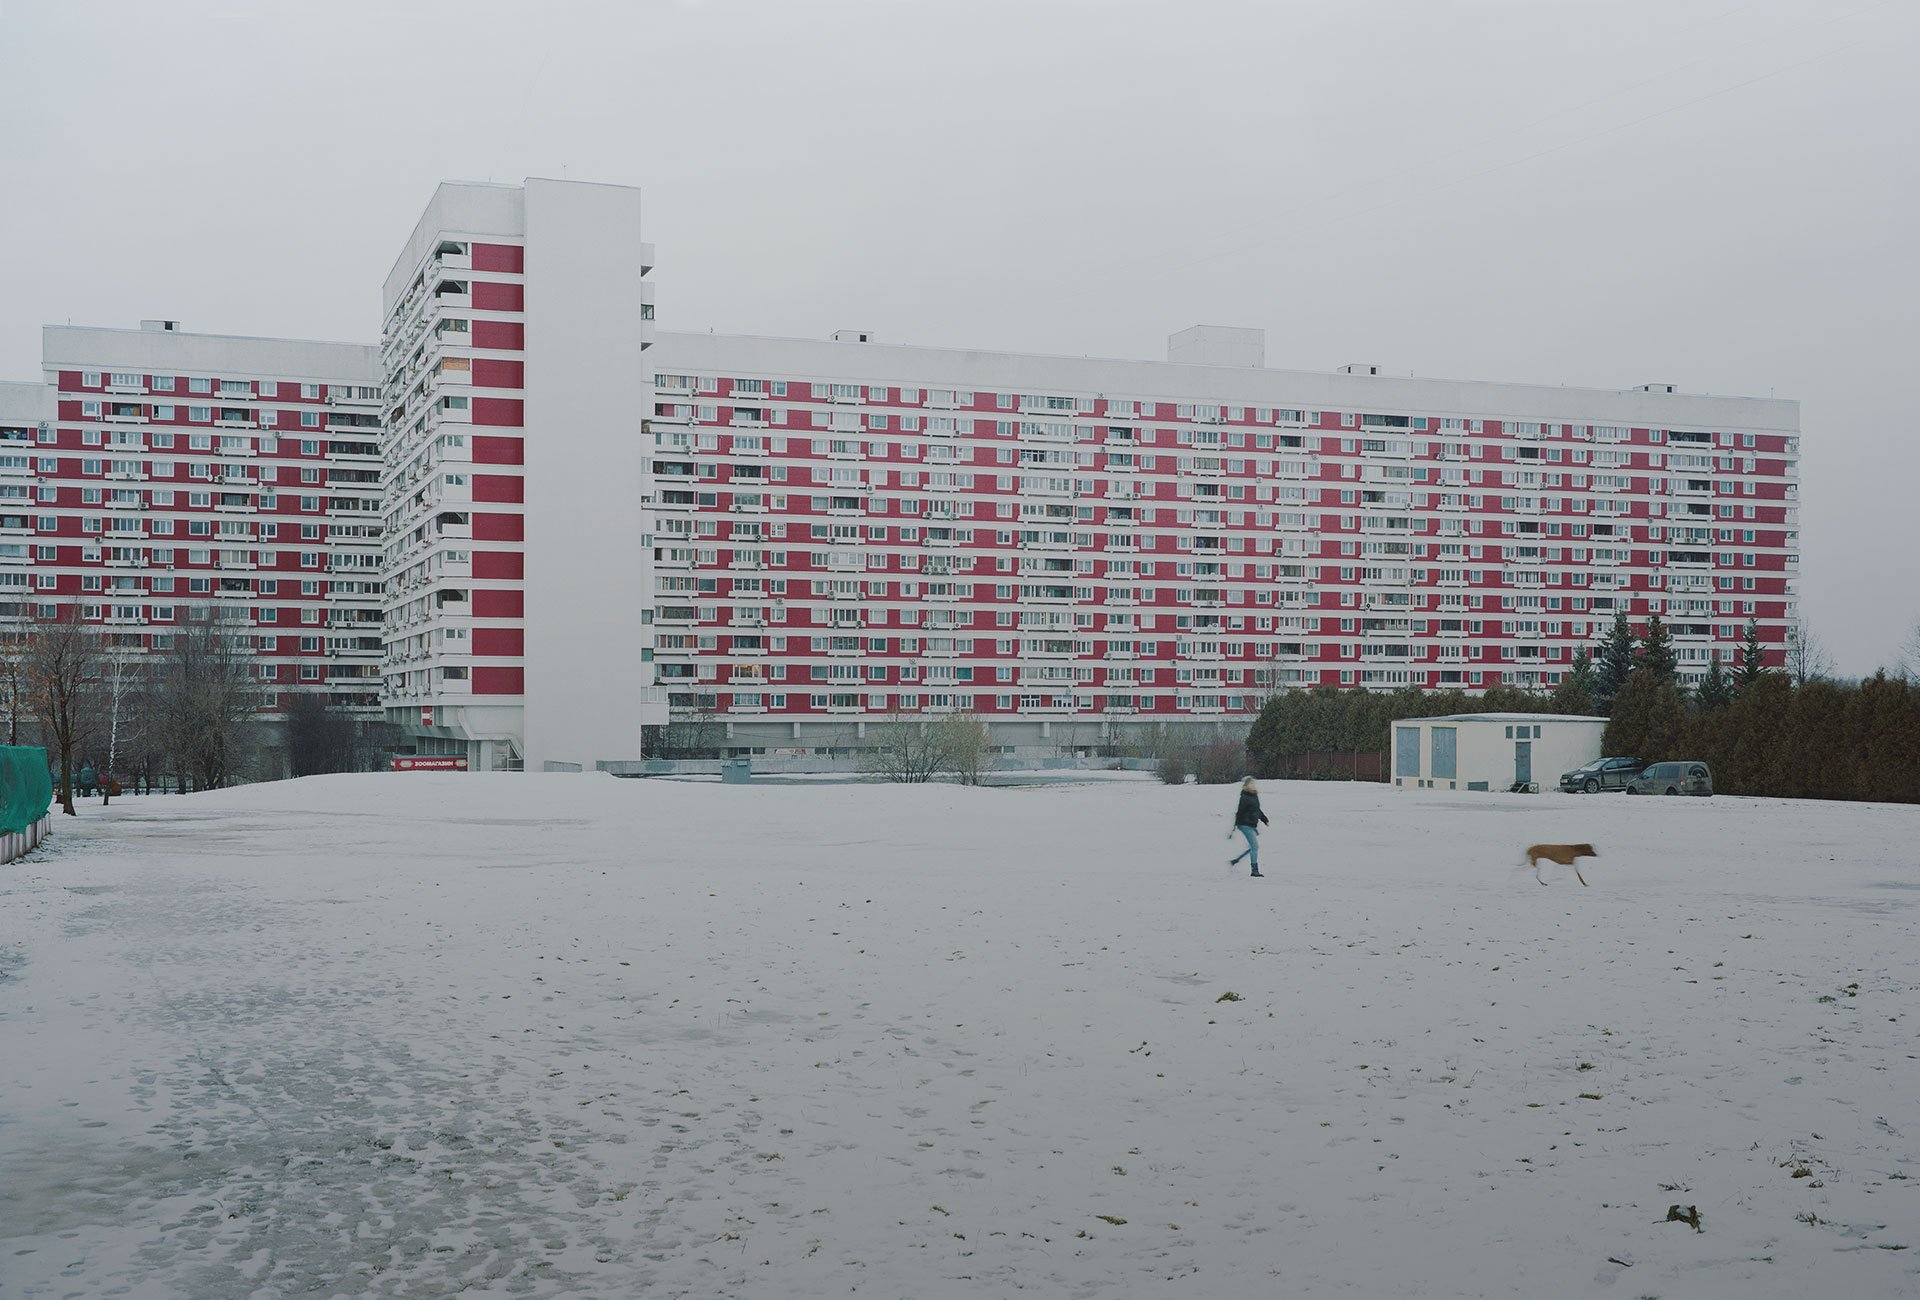 Concretopia: searching for the secret meaning of the suburbs in eastern Europe